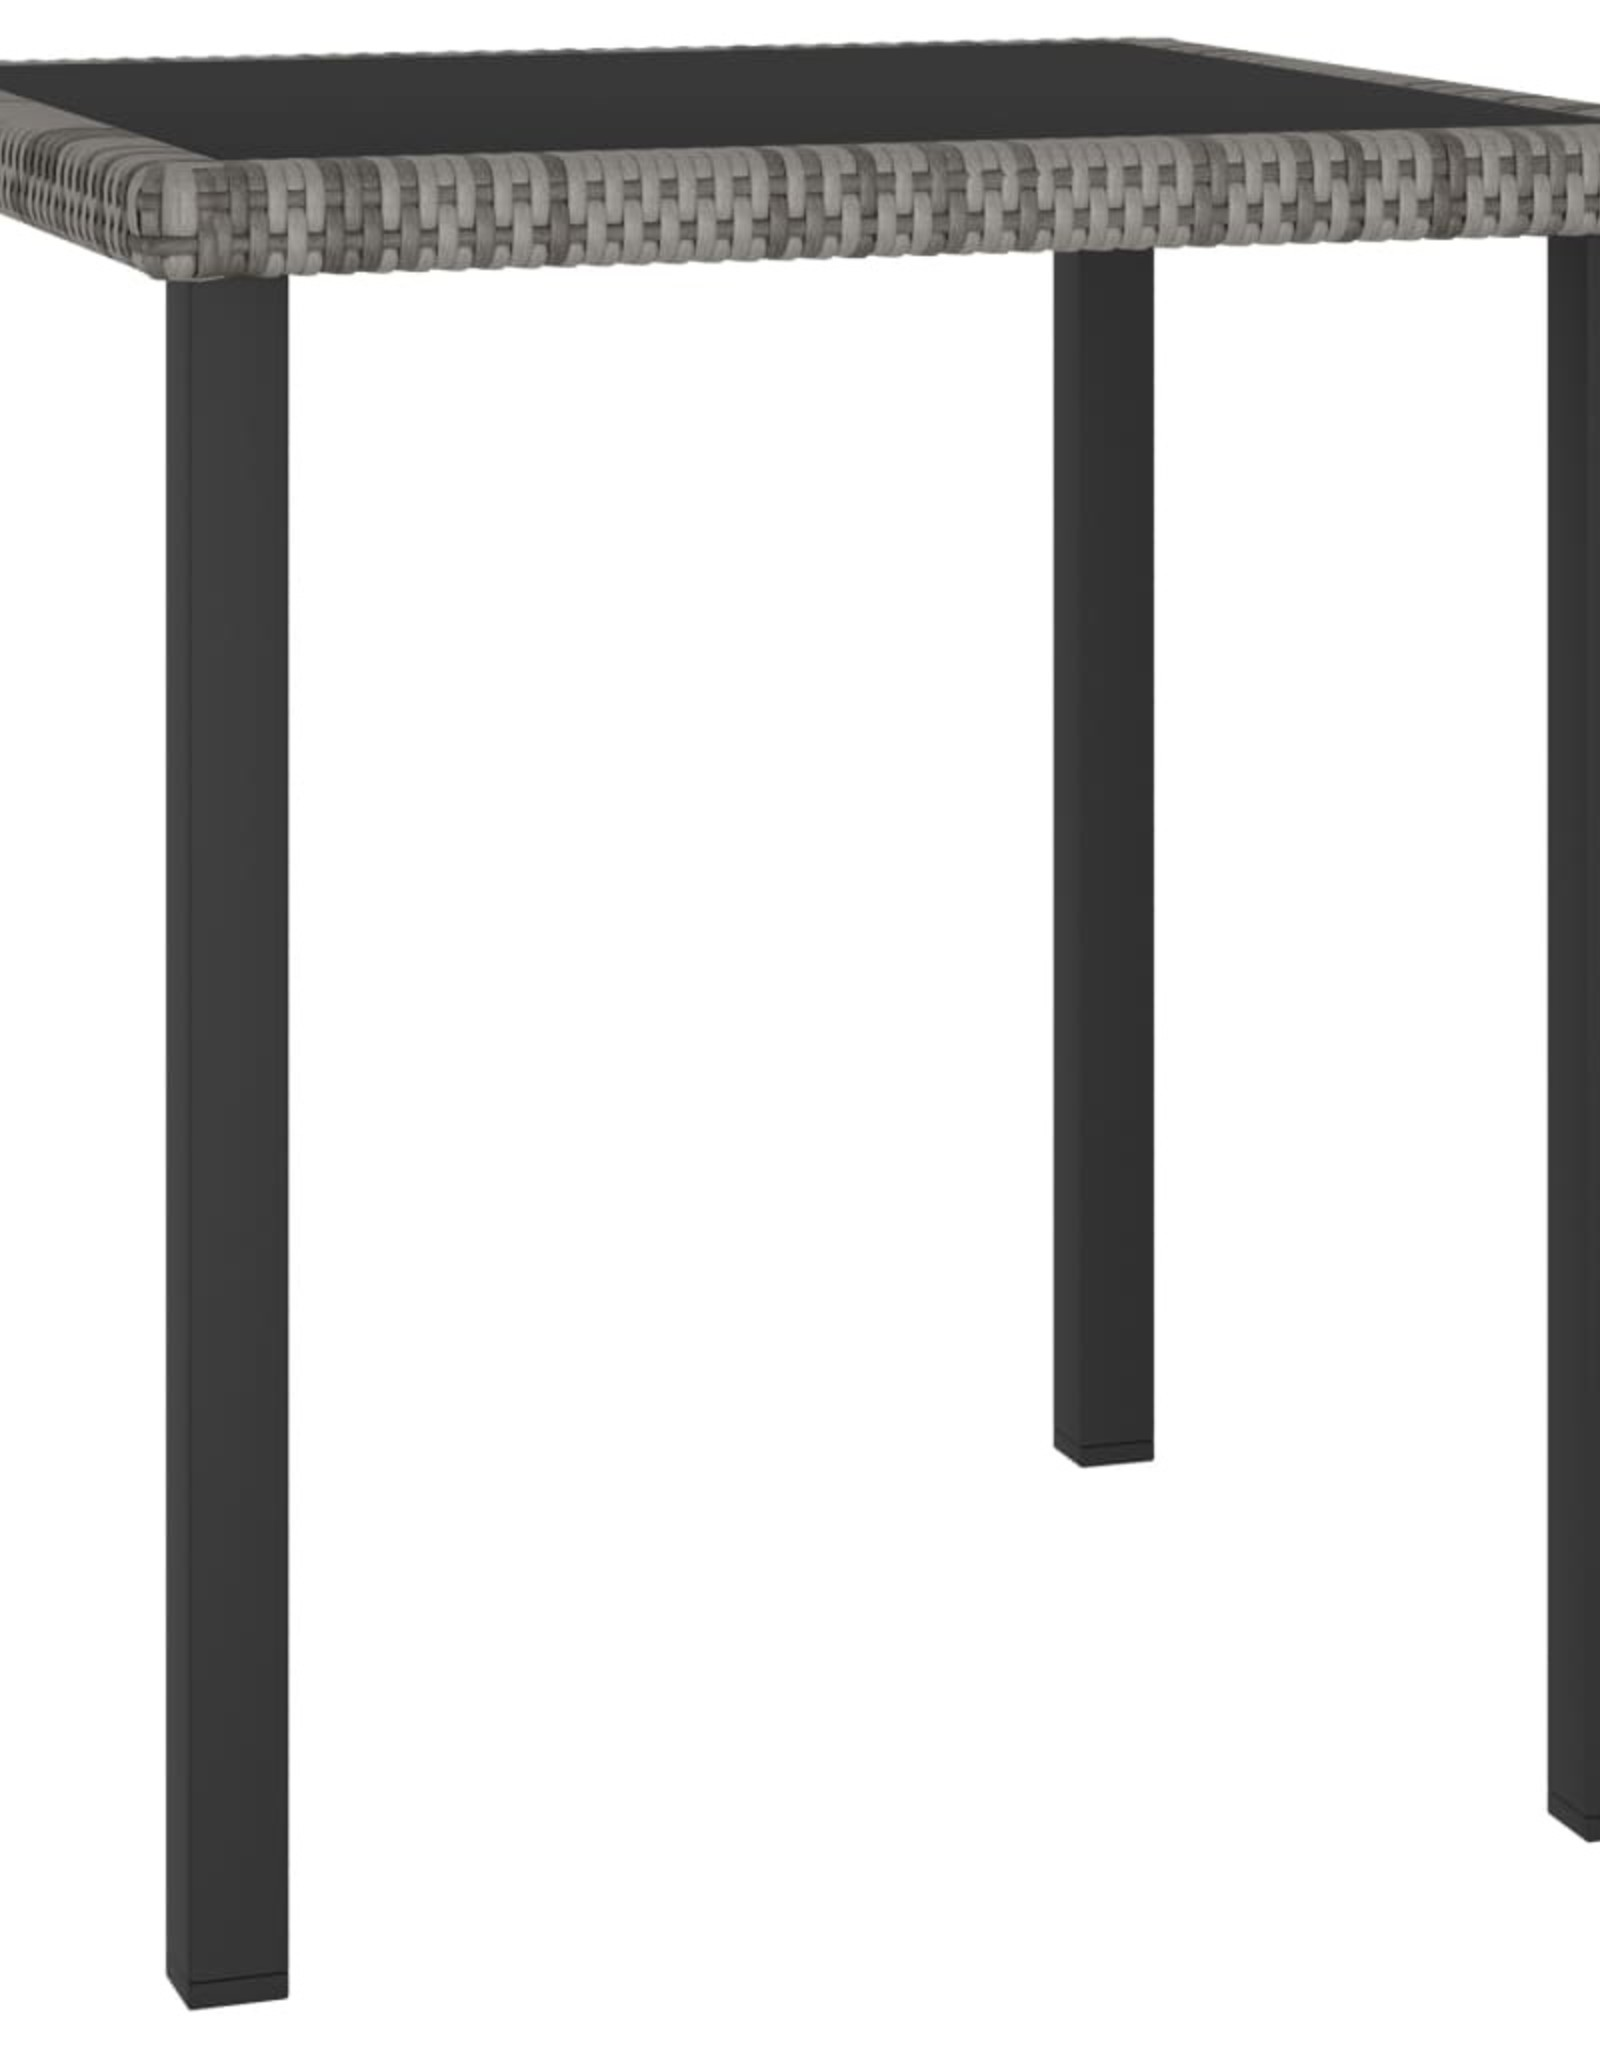 5-delige Tuinset poly rattan grijs